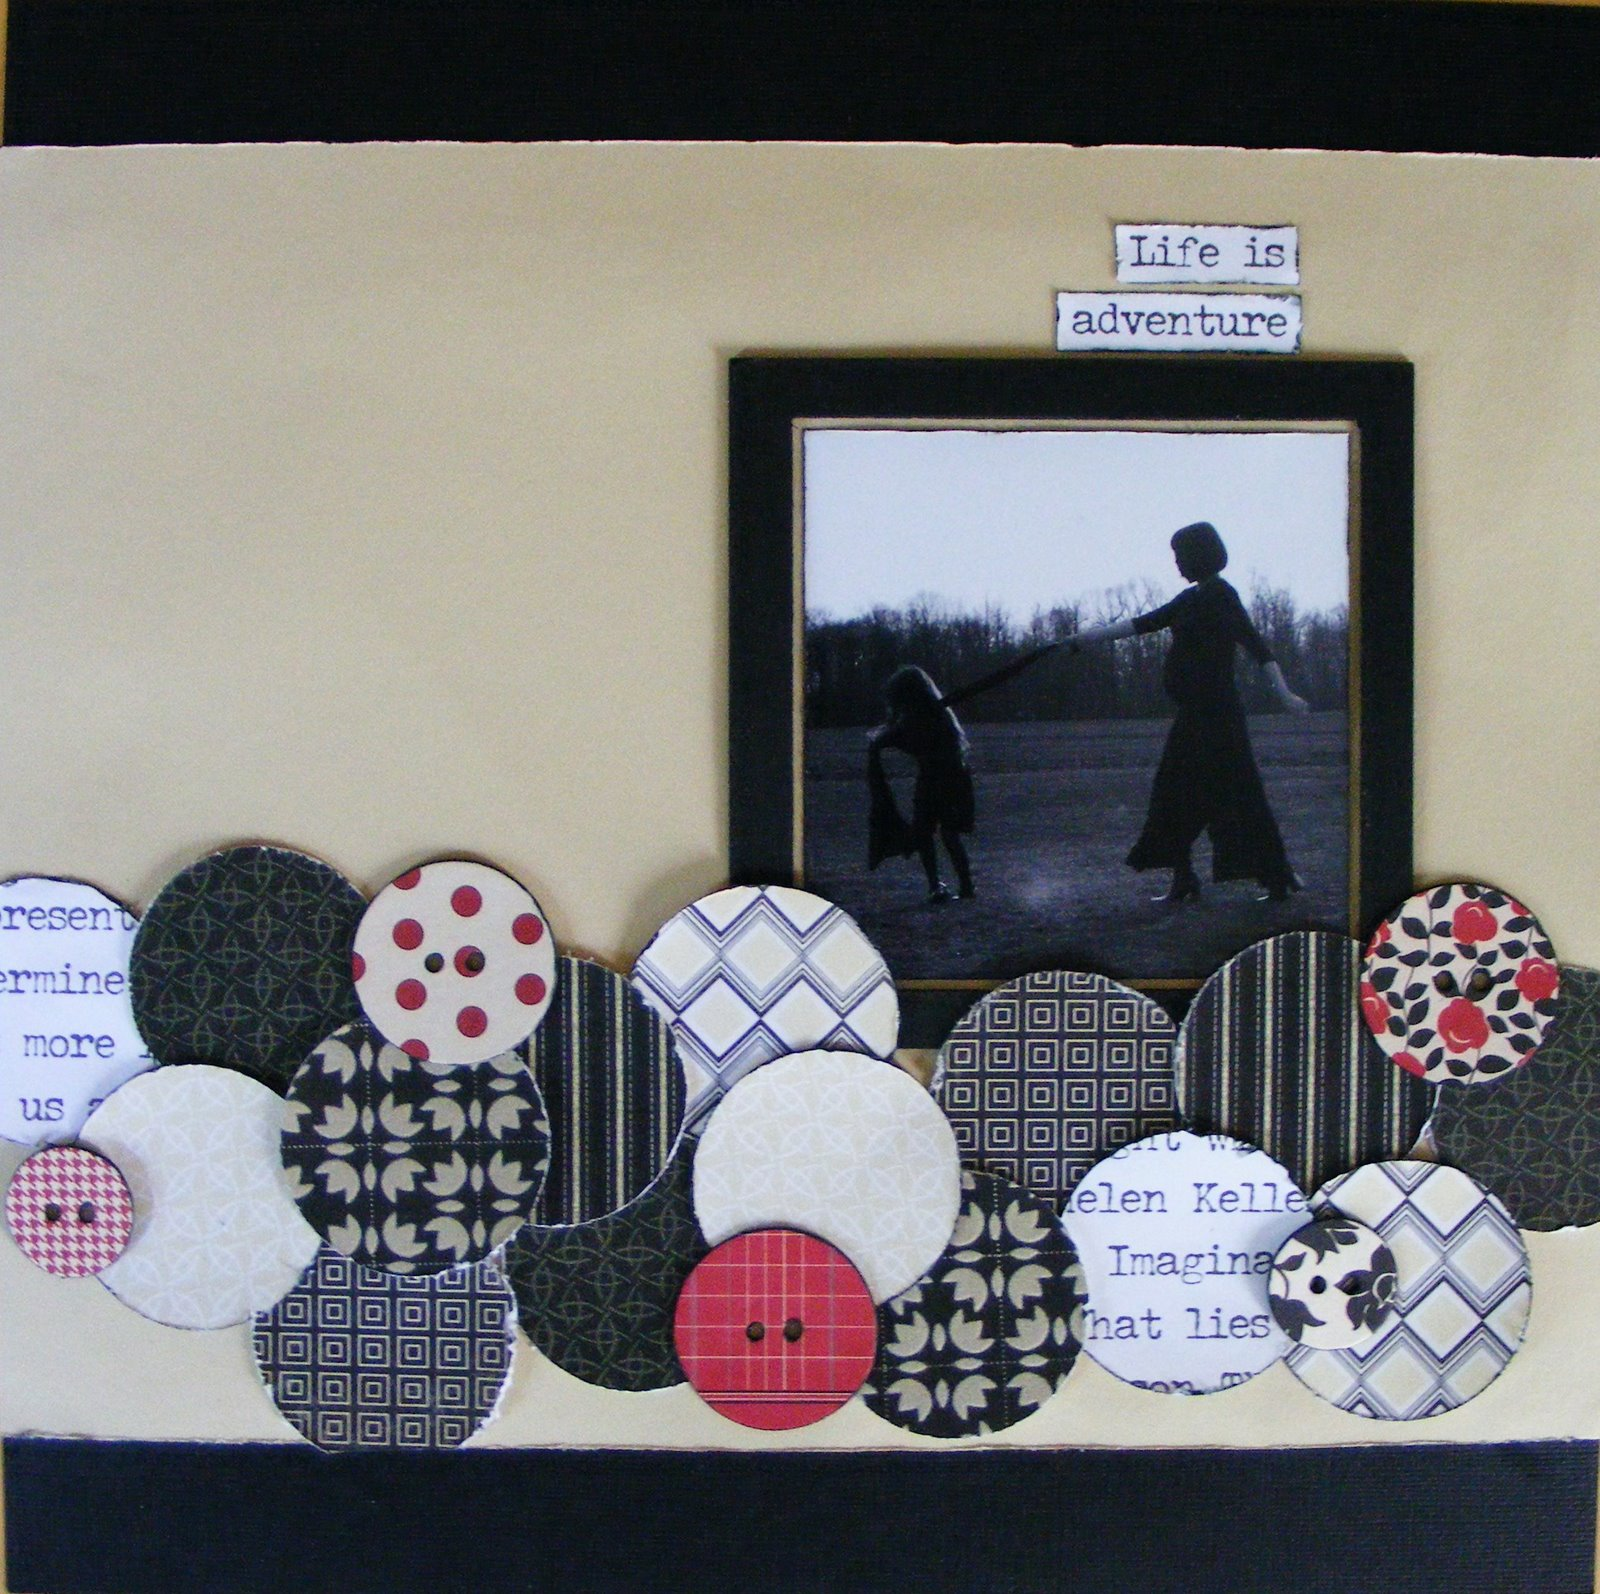 Scrapbook ideas recycled - Scrapbook Ideas Recycled Pregnancy Scrapbook Layouts Documenting 9 Months